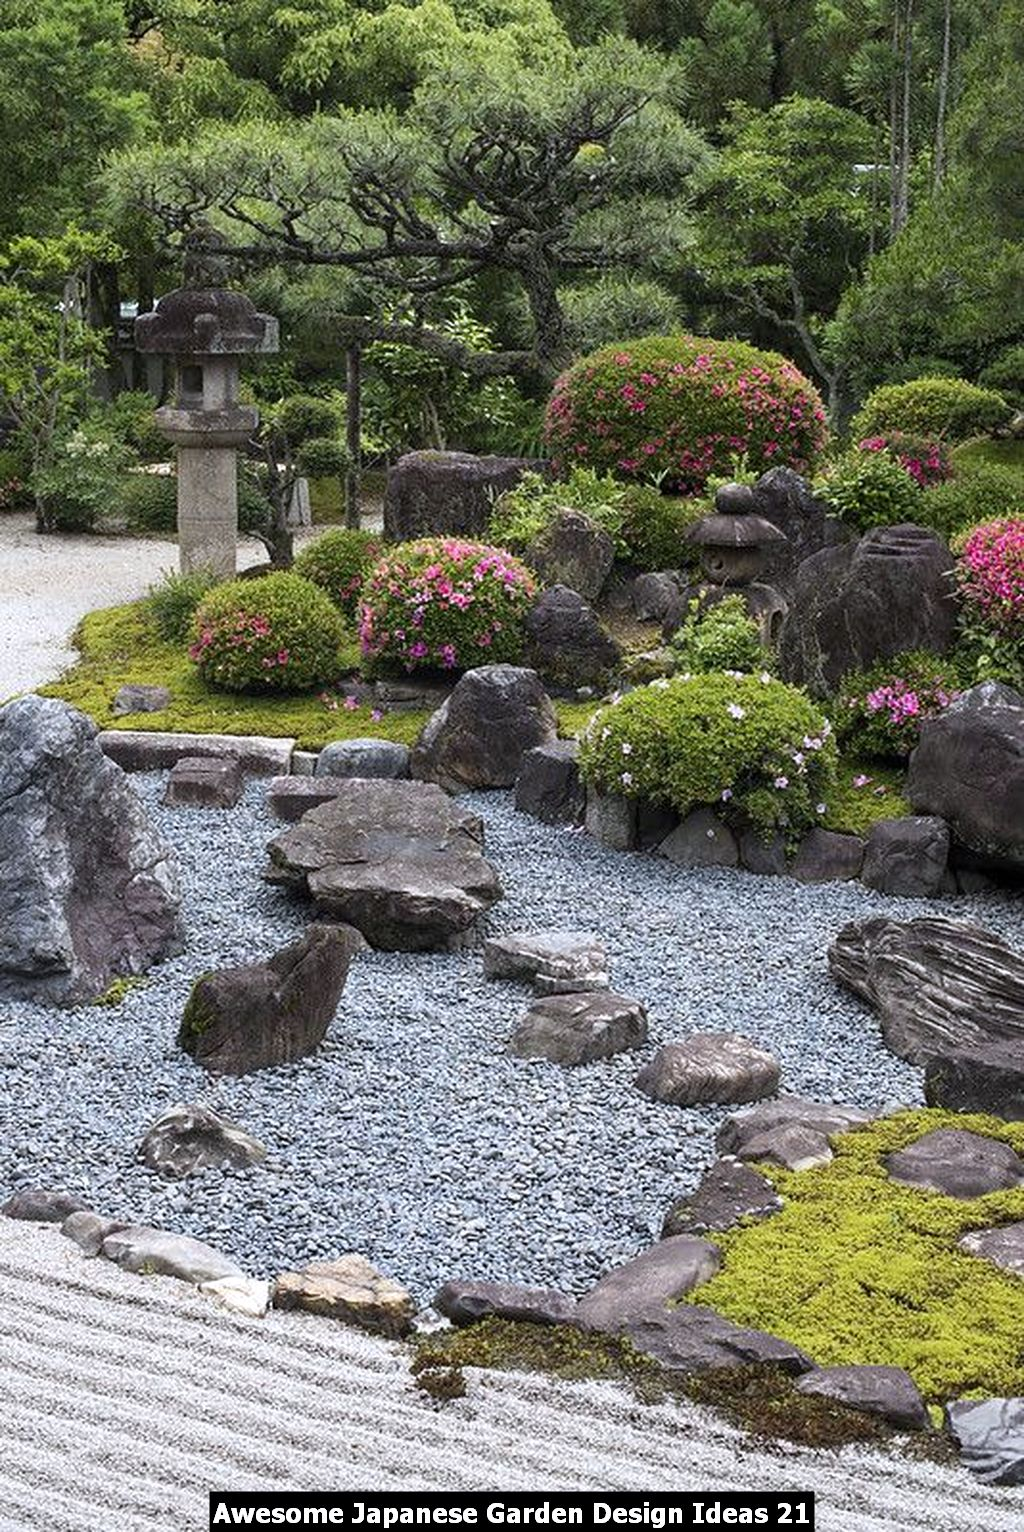 Awesome Japanese Garden Design Ideas 21